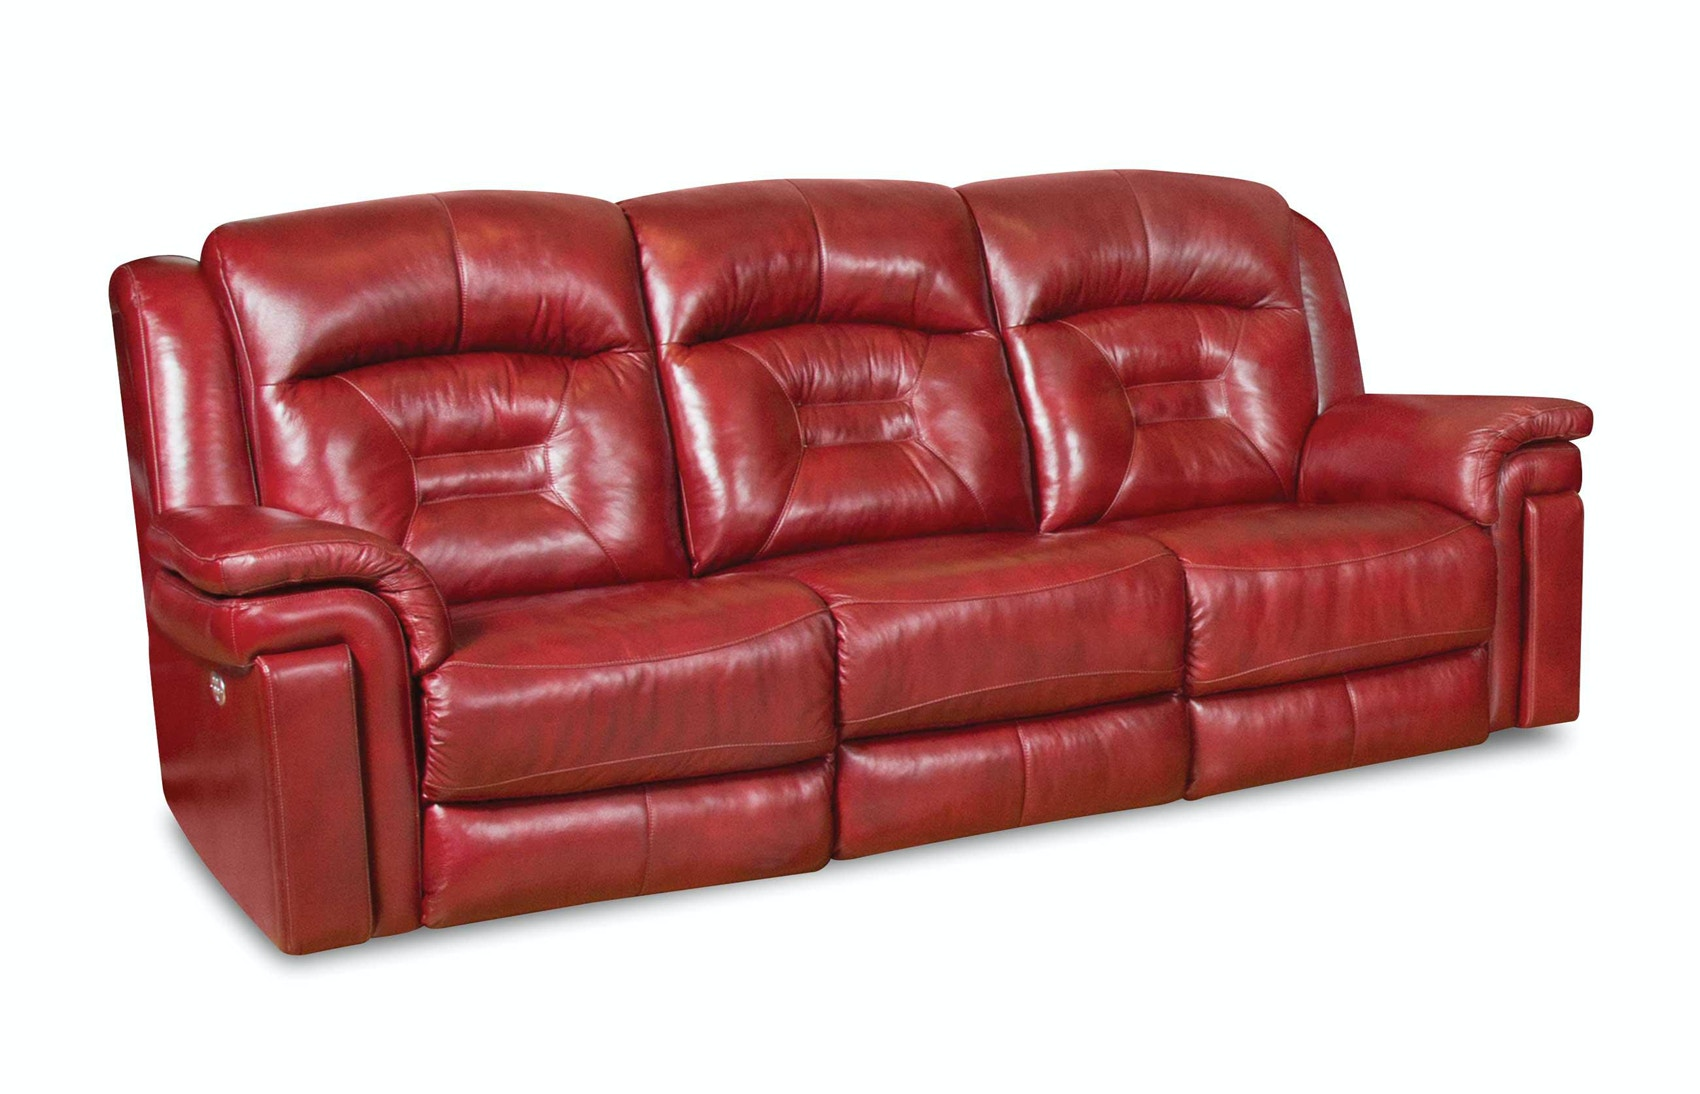 ... And Power Controlled Infinite Position Recline; The Avatar Brings The  Style And Comfort You Deserve. Avatar Power Motion Sofa 155104 Southern  Motion